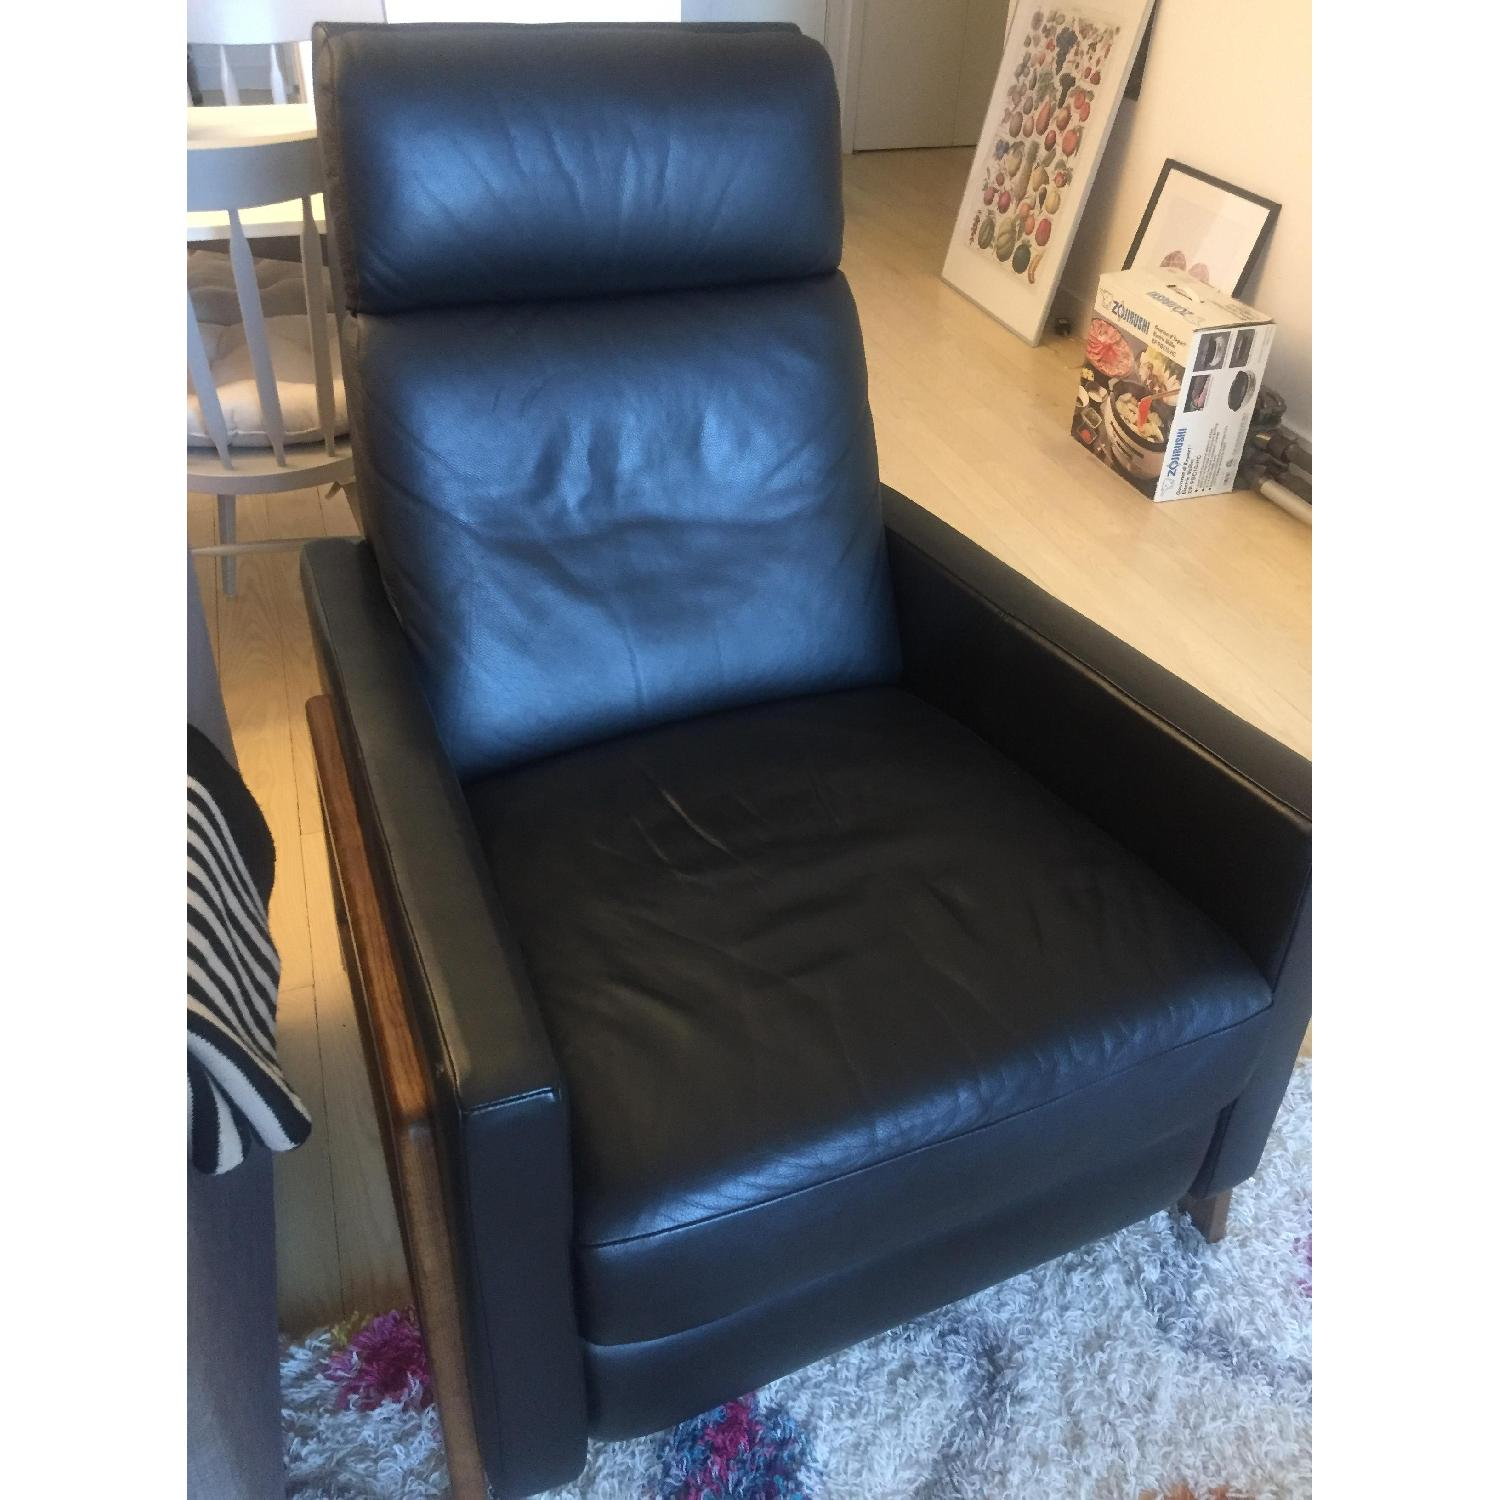 West Elm Black Leather Recliner - image-3